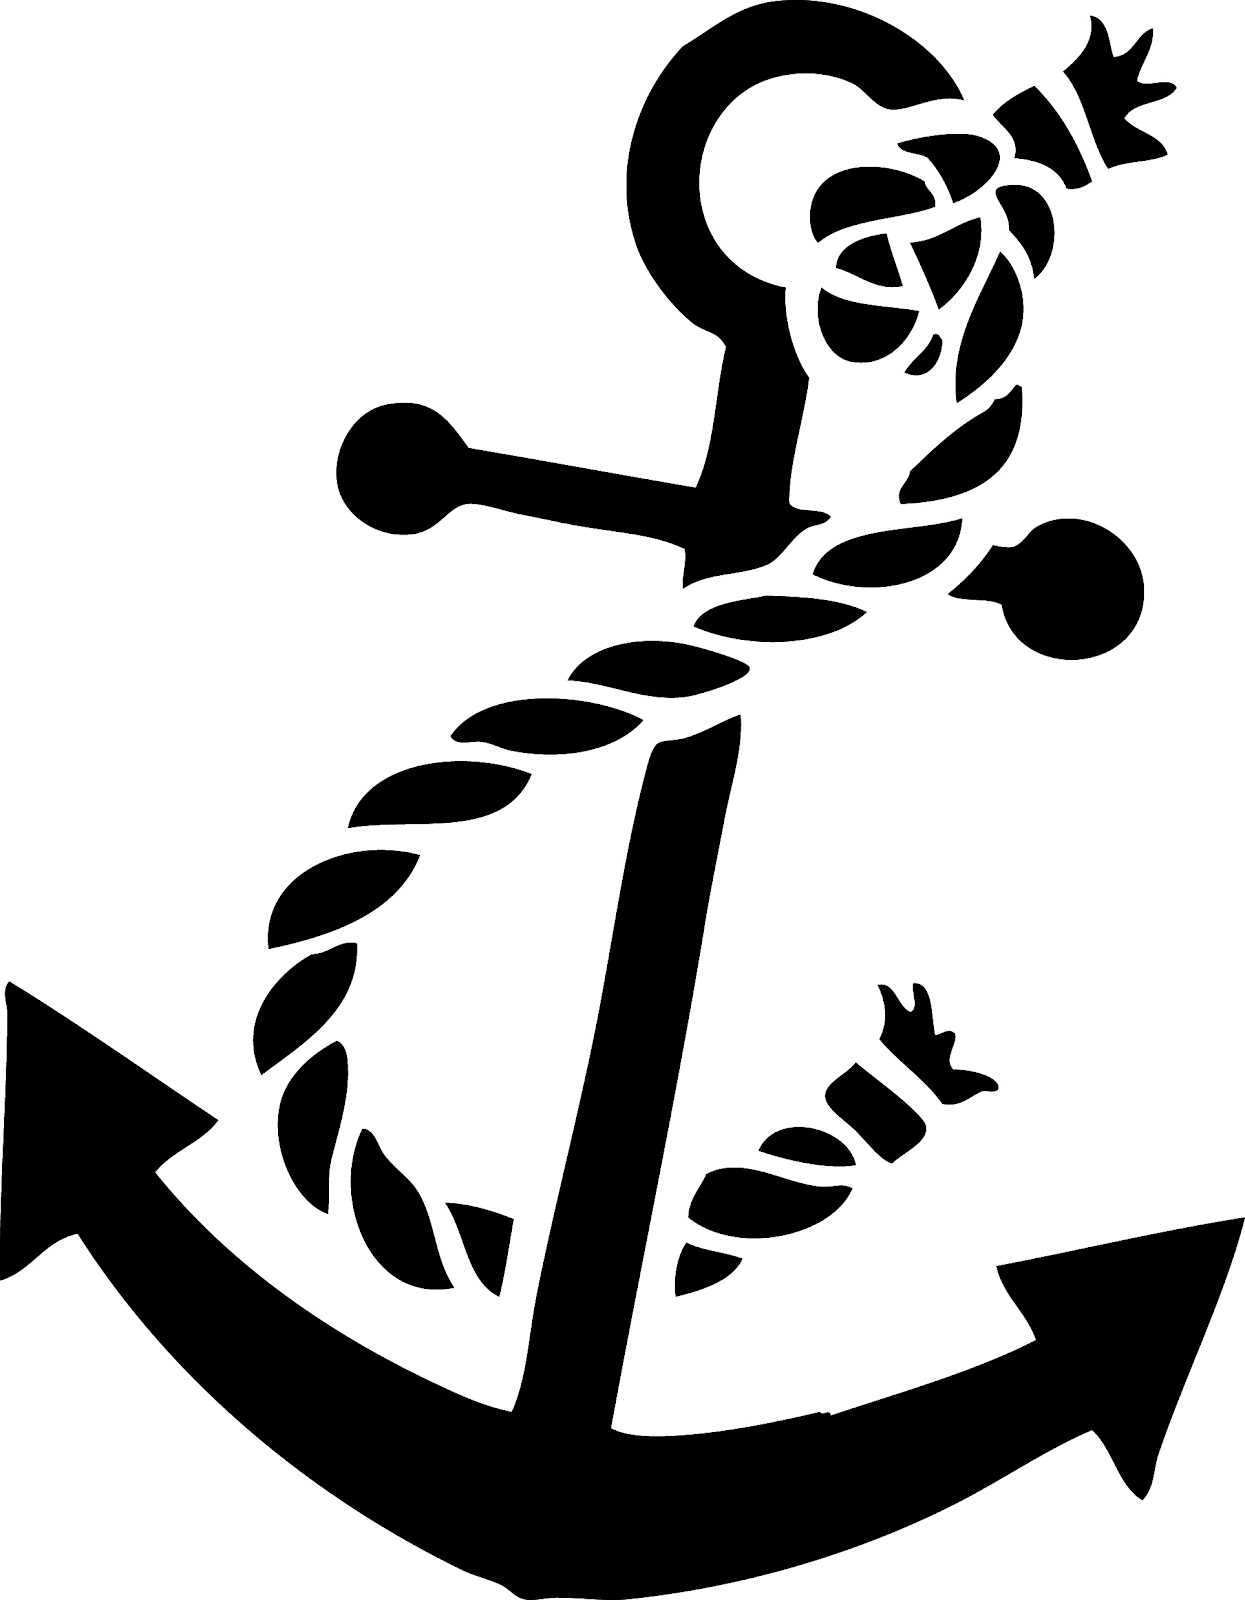 Free Anchor Images, Download Free Clip Art, Free Clip Art on.